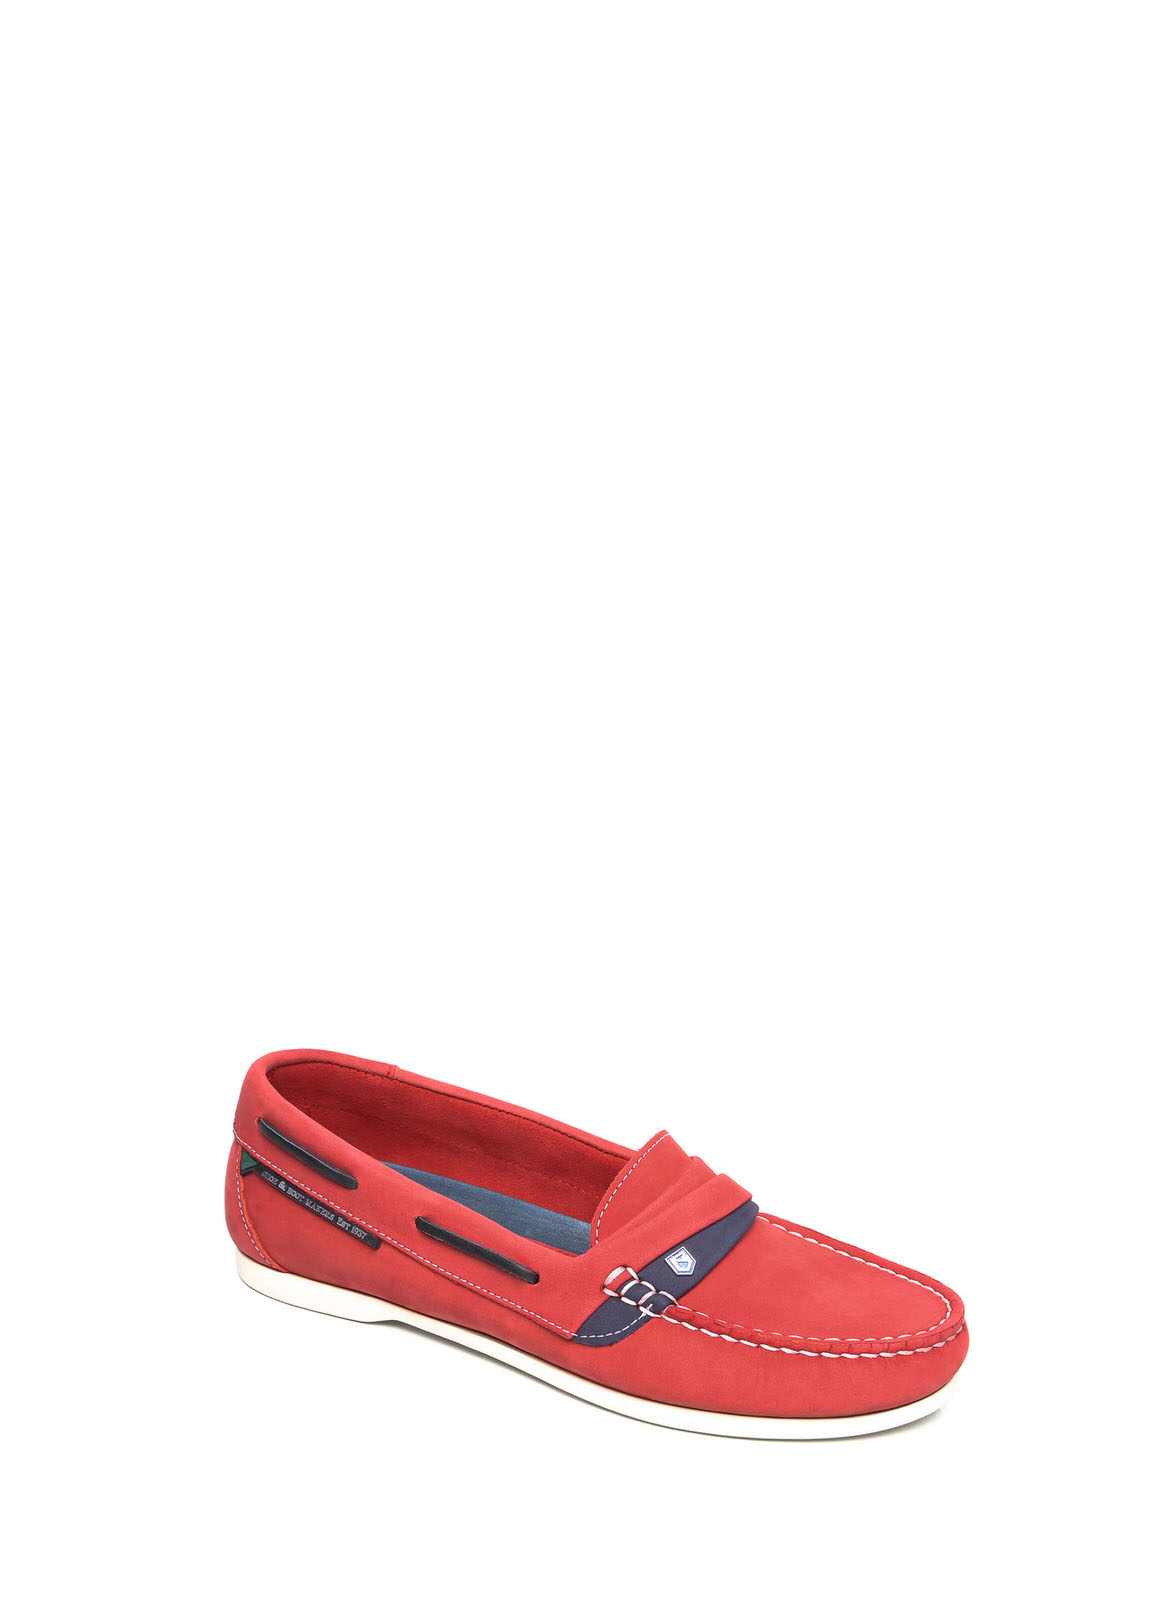 Hawaii Moccasins - Red